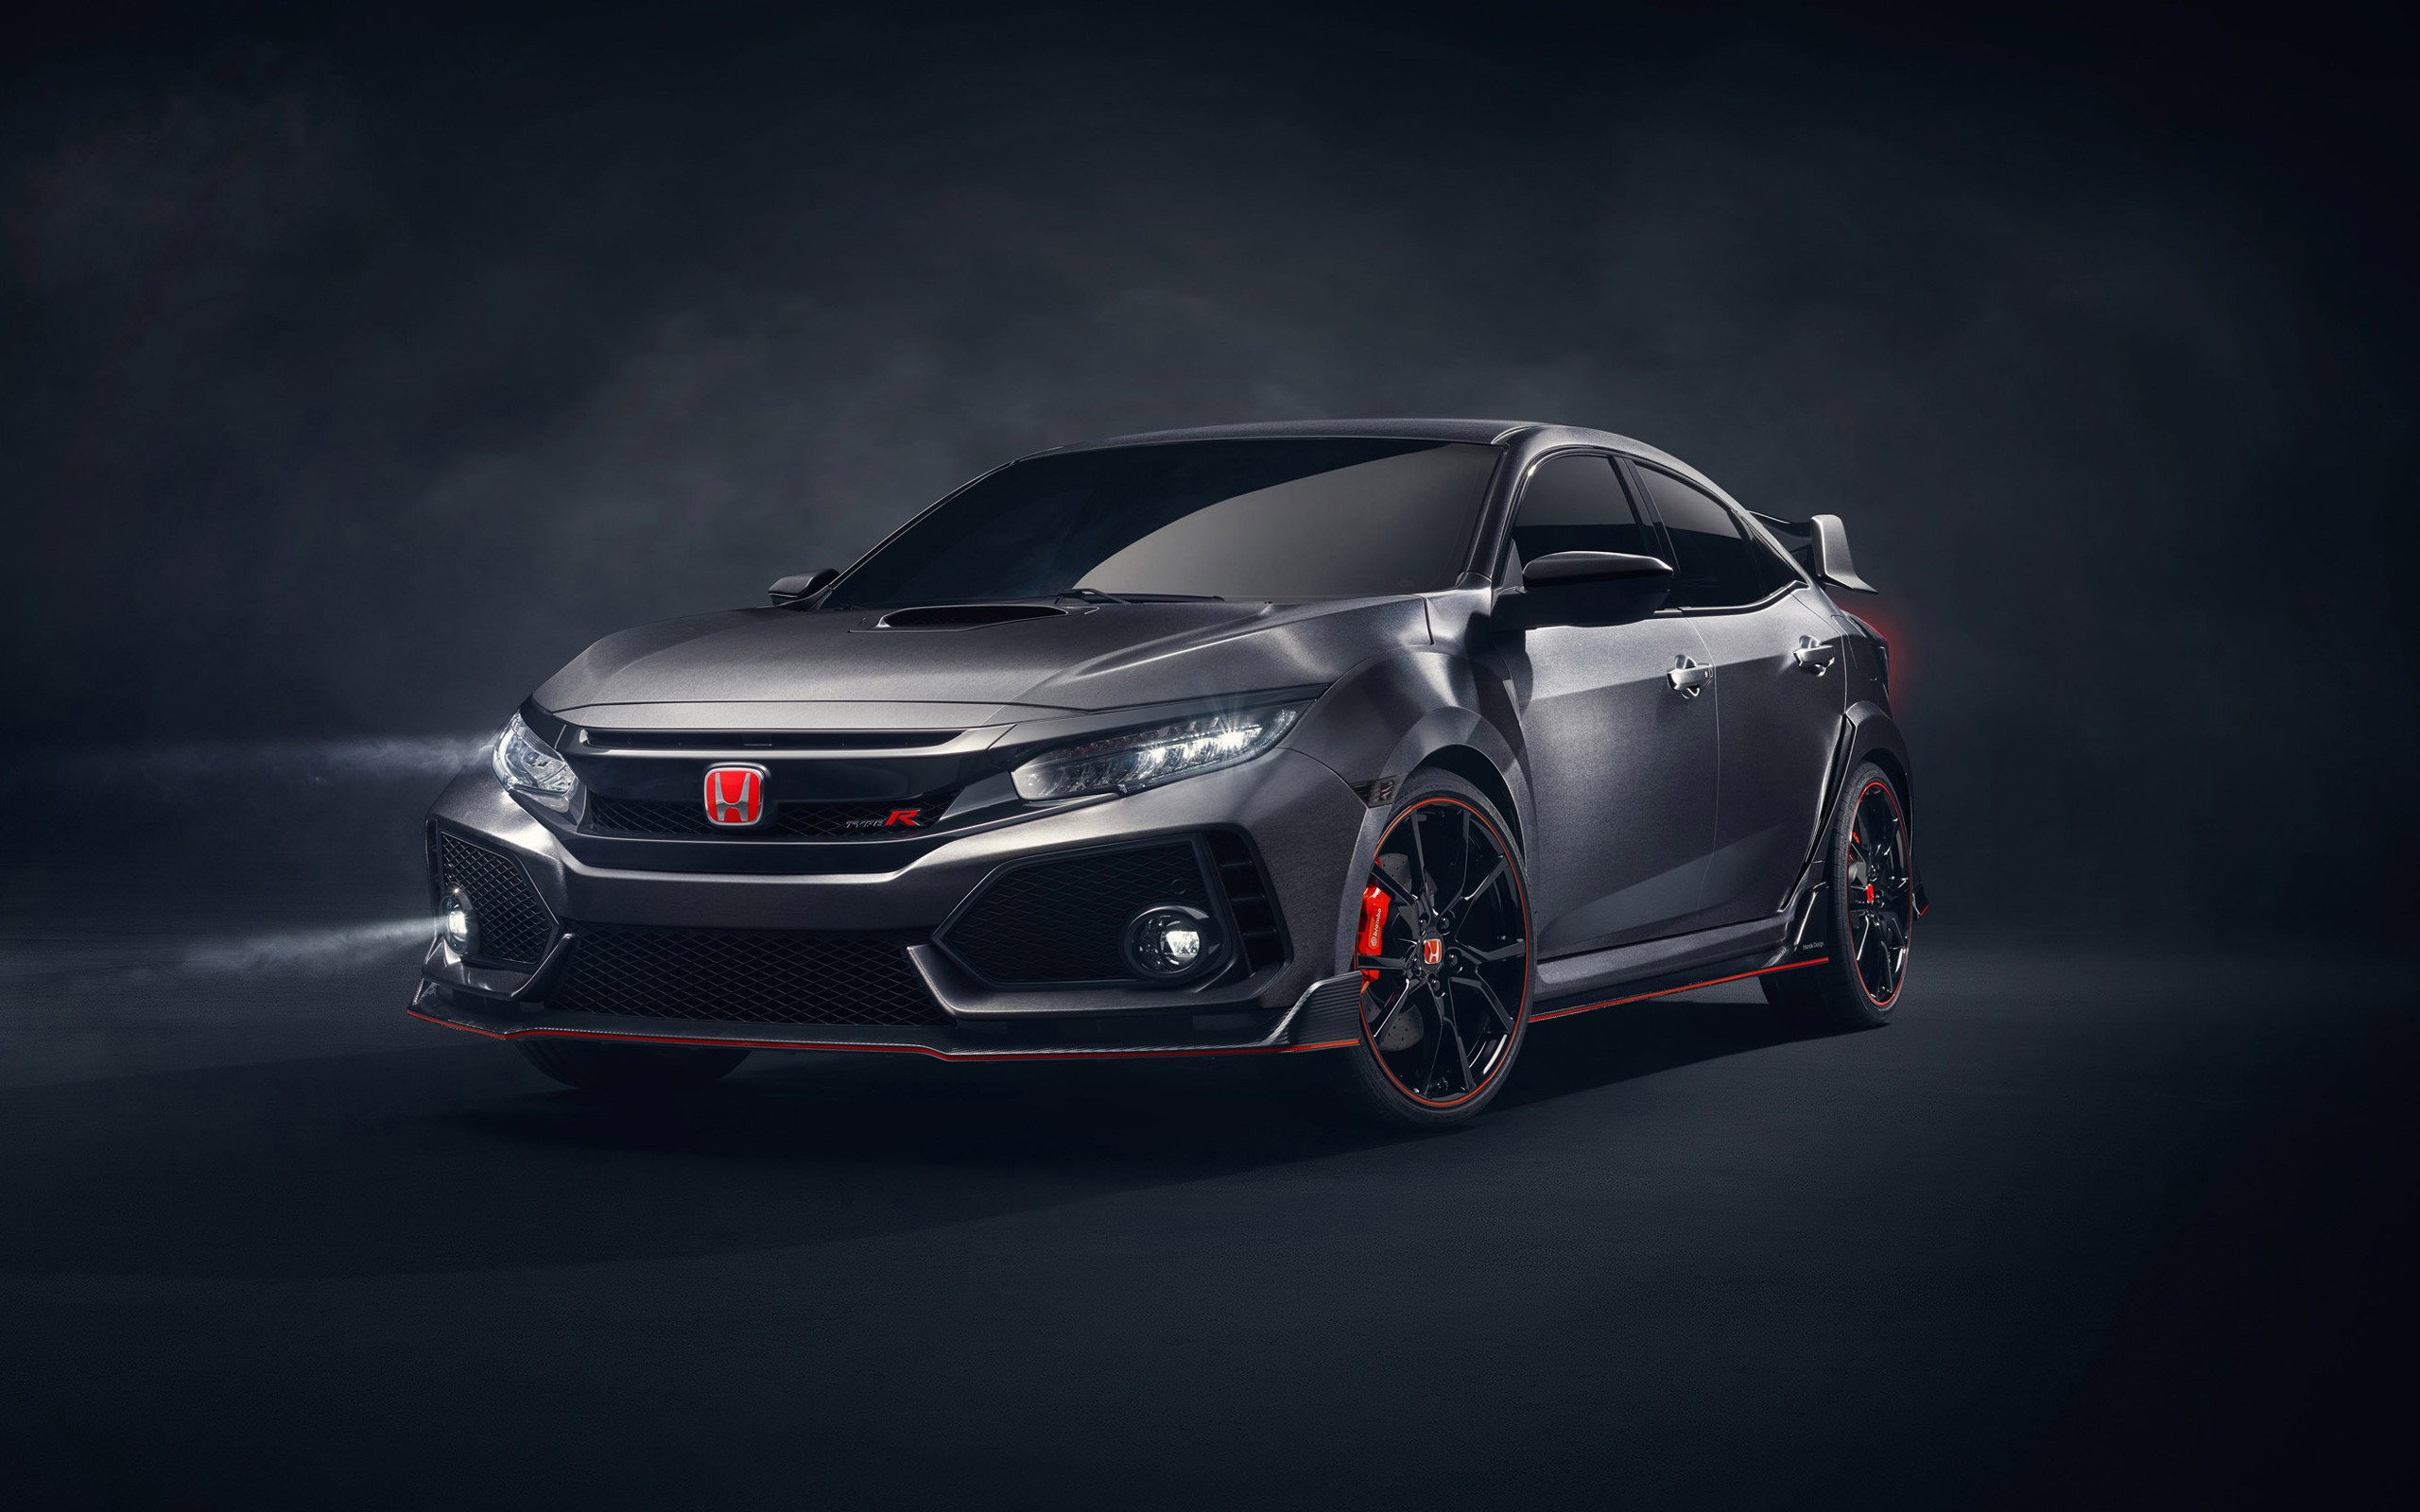 Honda Wallpaper 1 Download Free Beautiful Full HD Wallpapers For